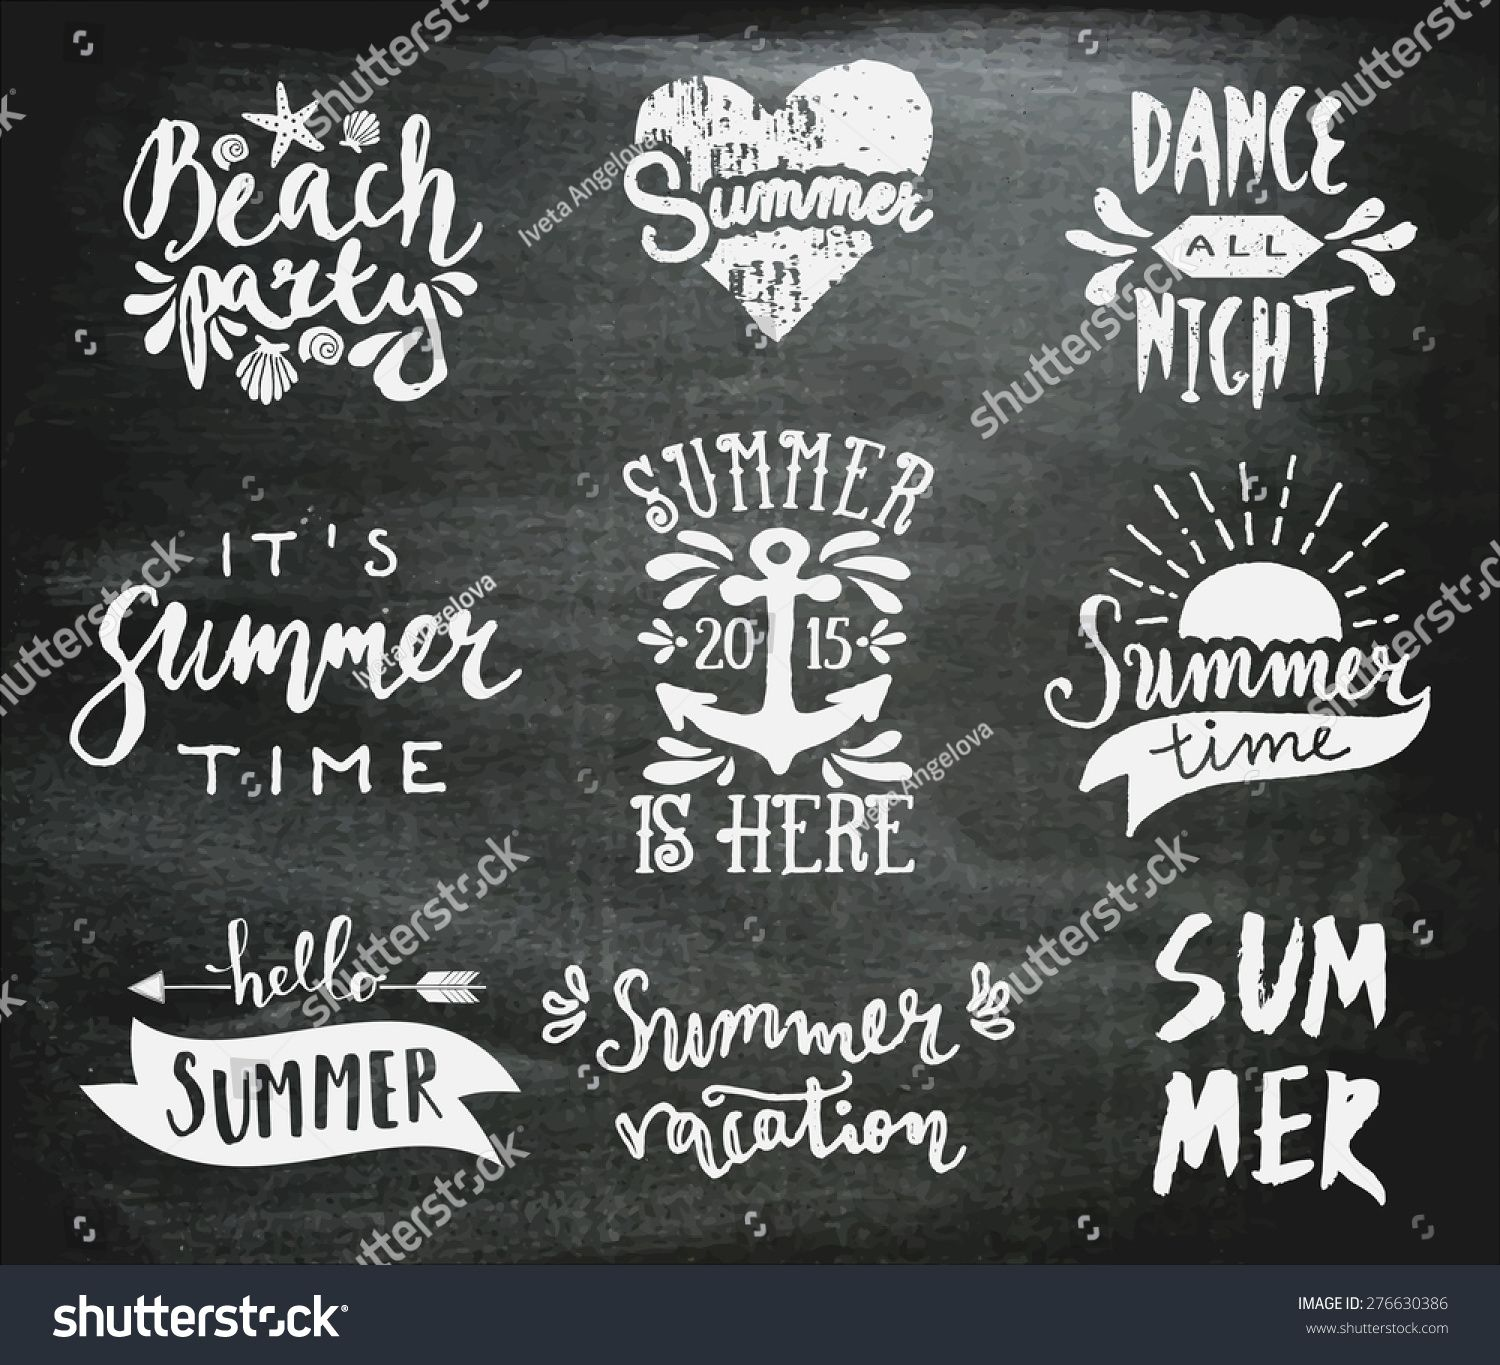 a set of chalkboard style typographic summer designs hand drawn